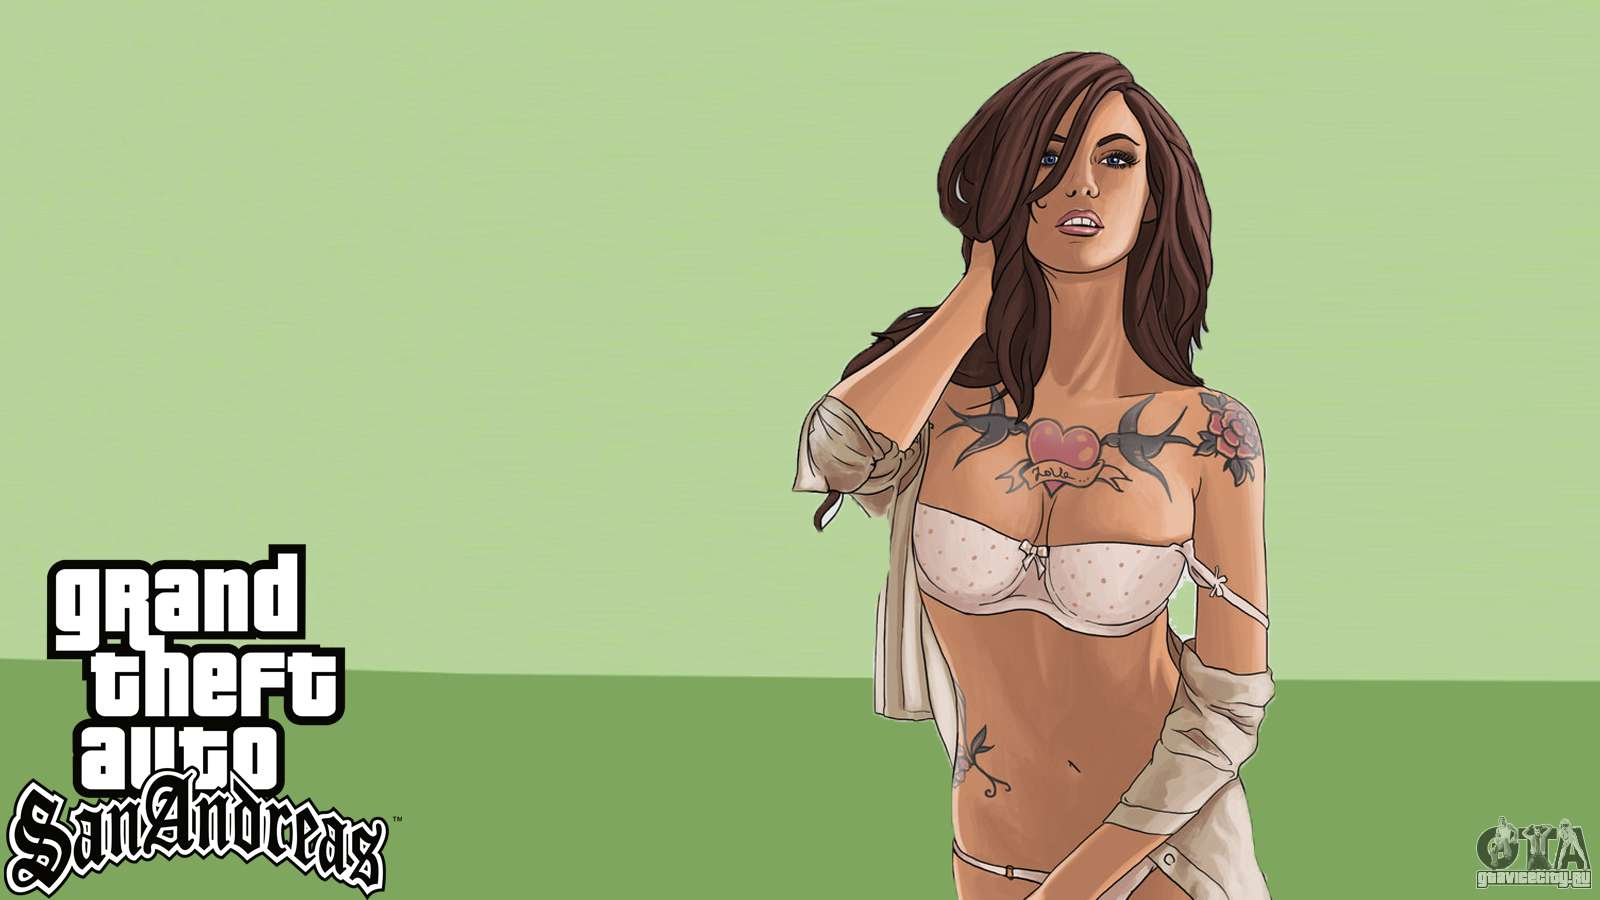 Nude gta sanandreas girl wallpapers nude scenes